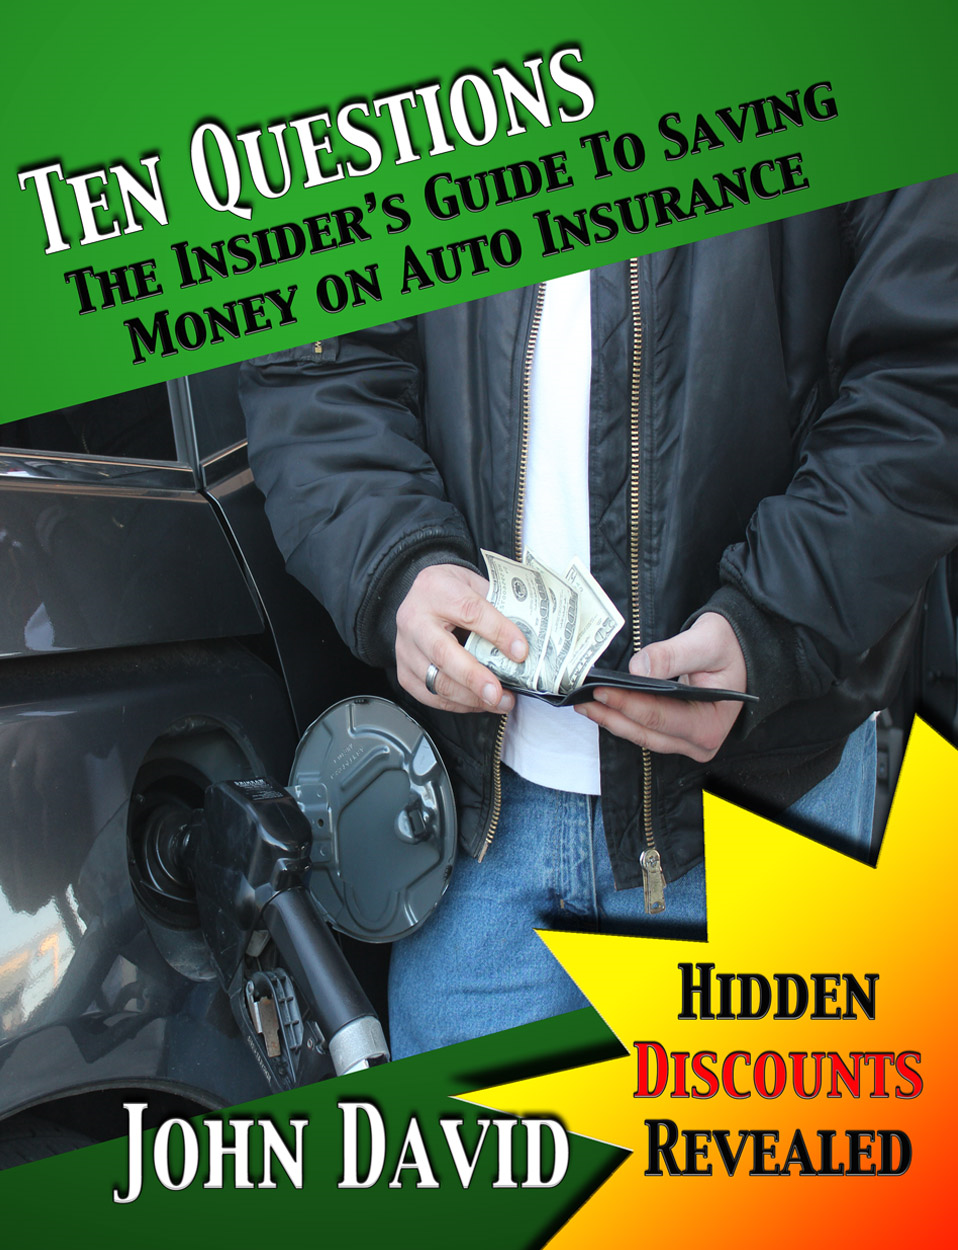 Ten Questions - The Insider's Guide to Saving Money on Auto Insurance